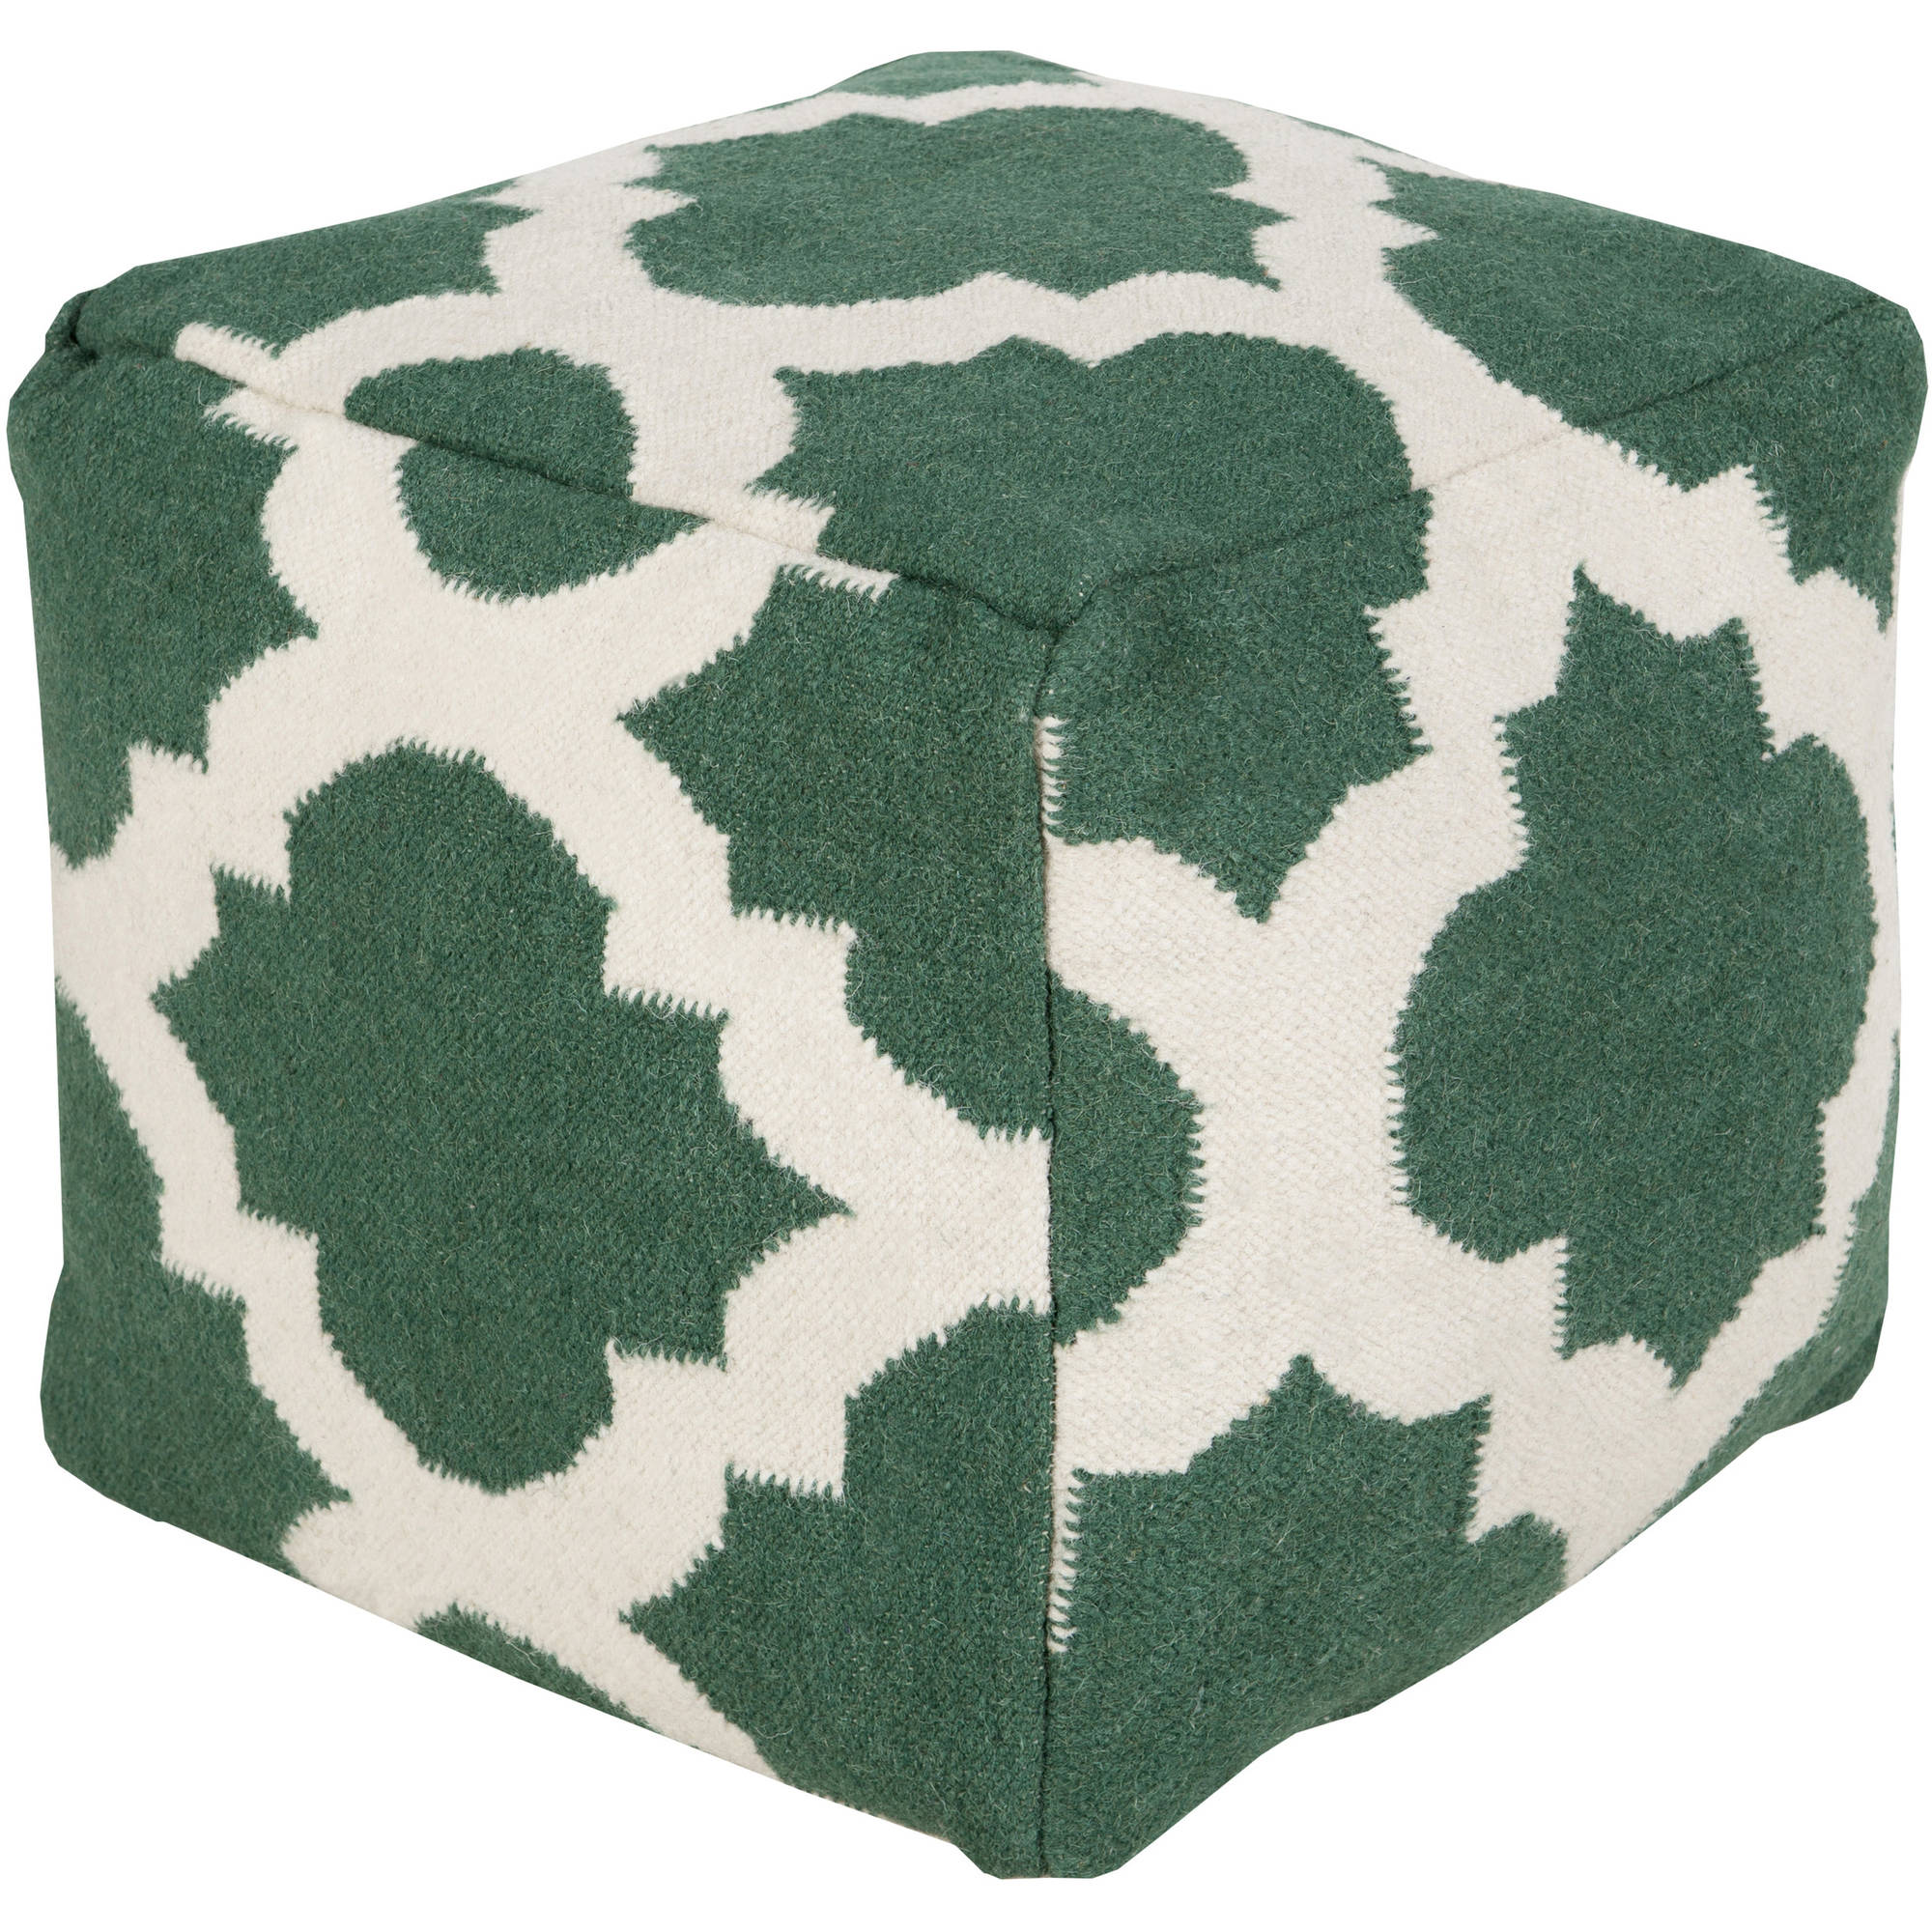 Libby Langdon Moroccan Hand Made Geometric Wool Decorative Pouf